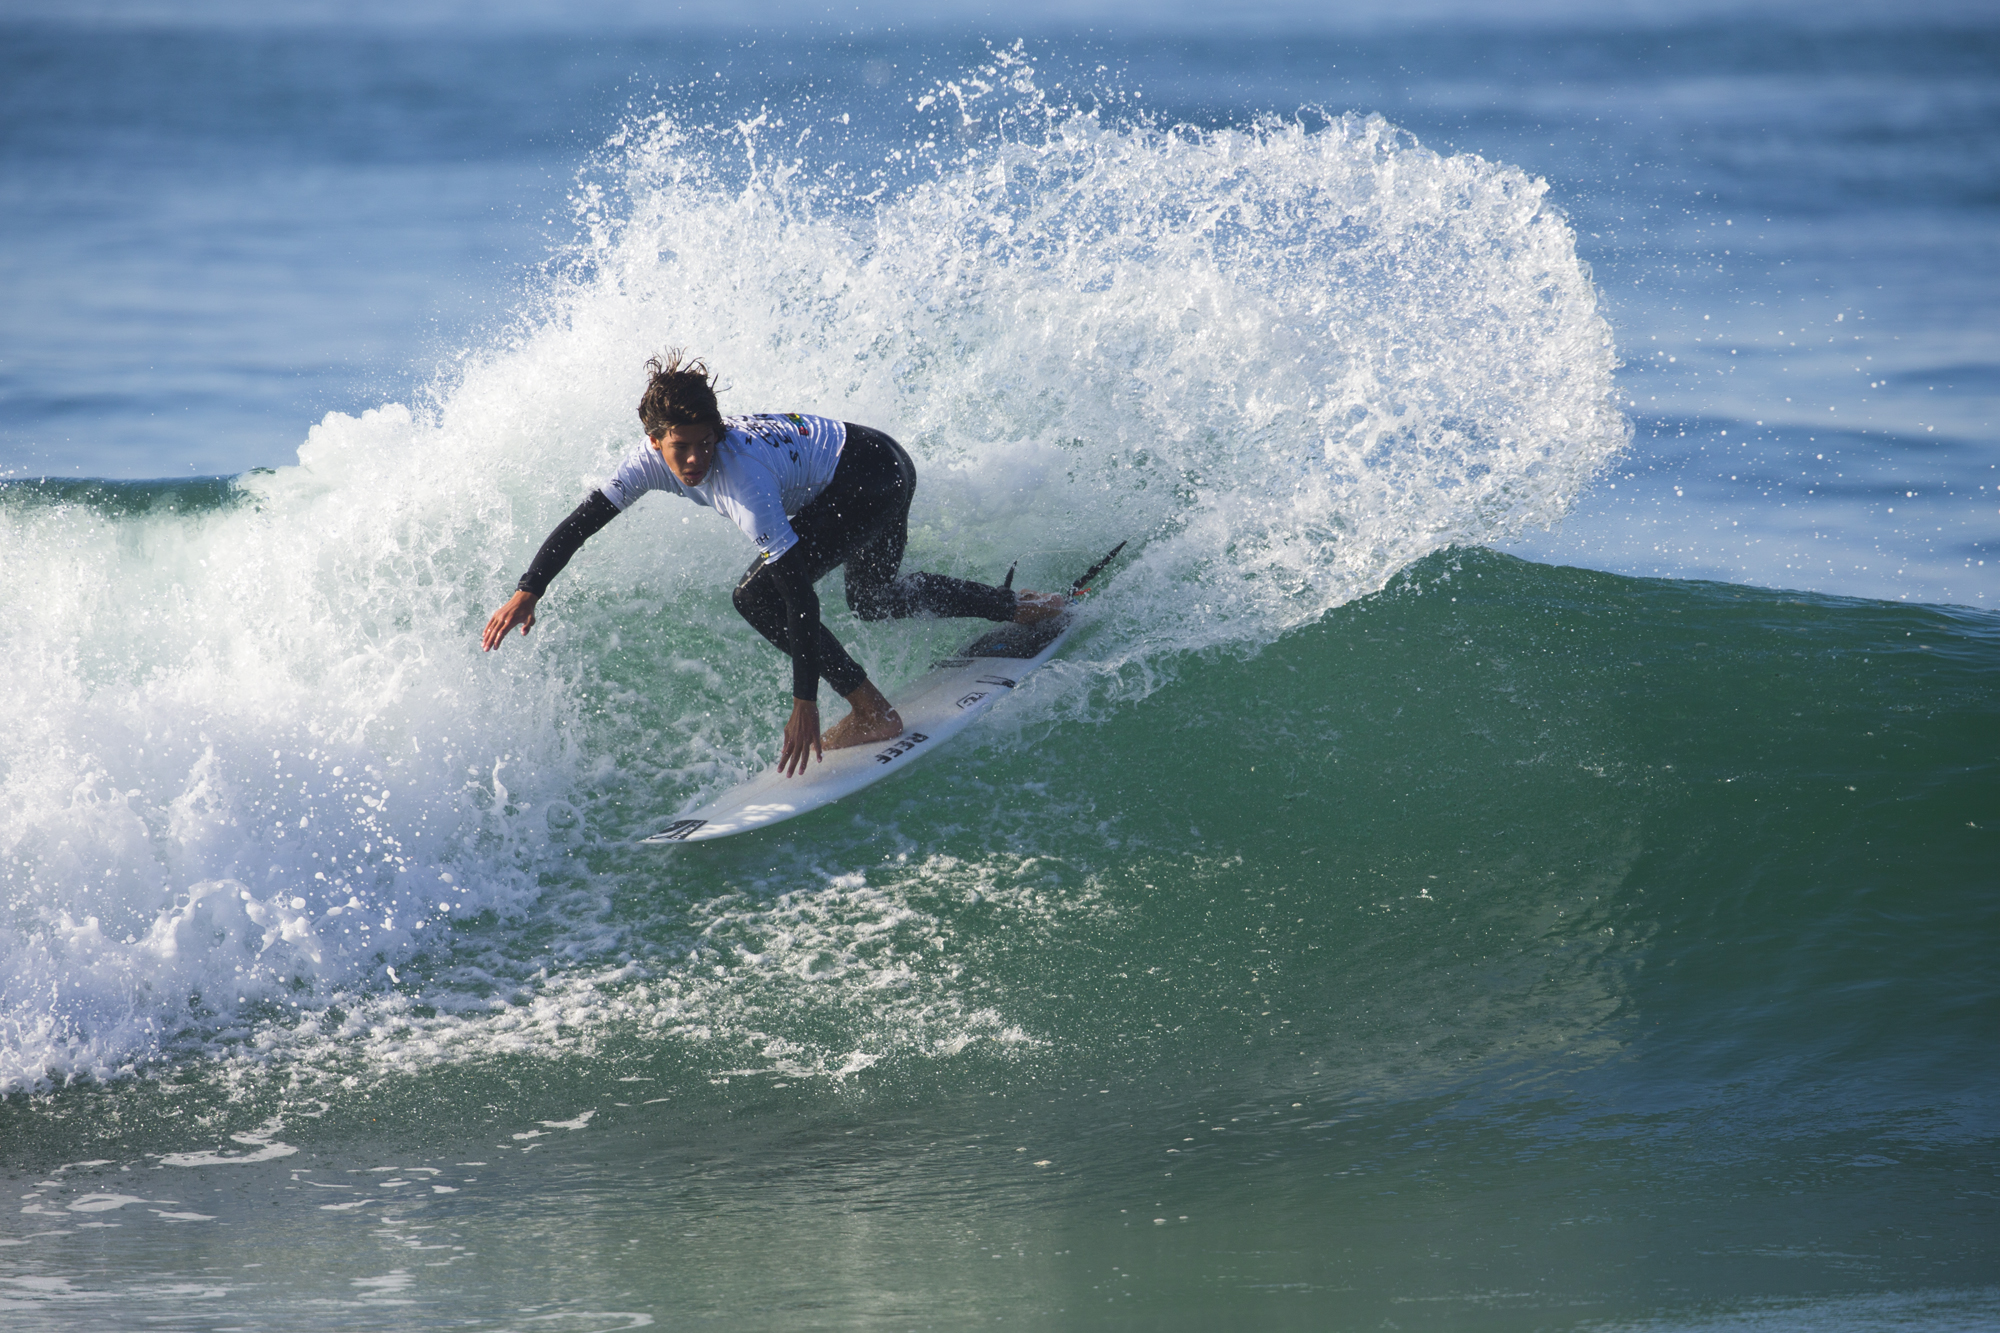 guilherme-ribeiro-rip-curl-grom-search-2017-finale-europe-we-creative-antoine-justes